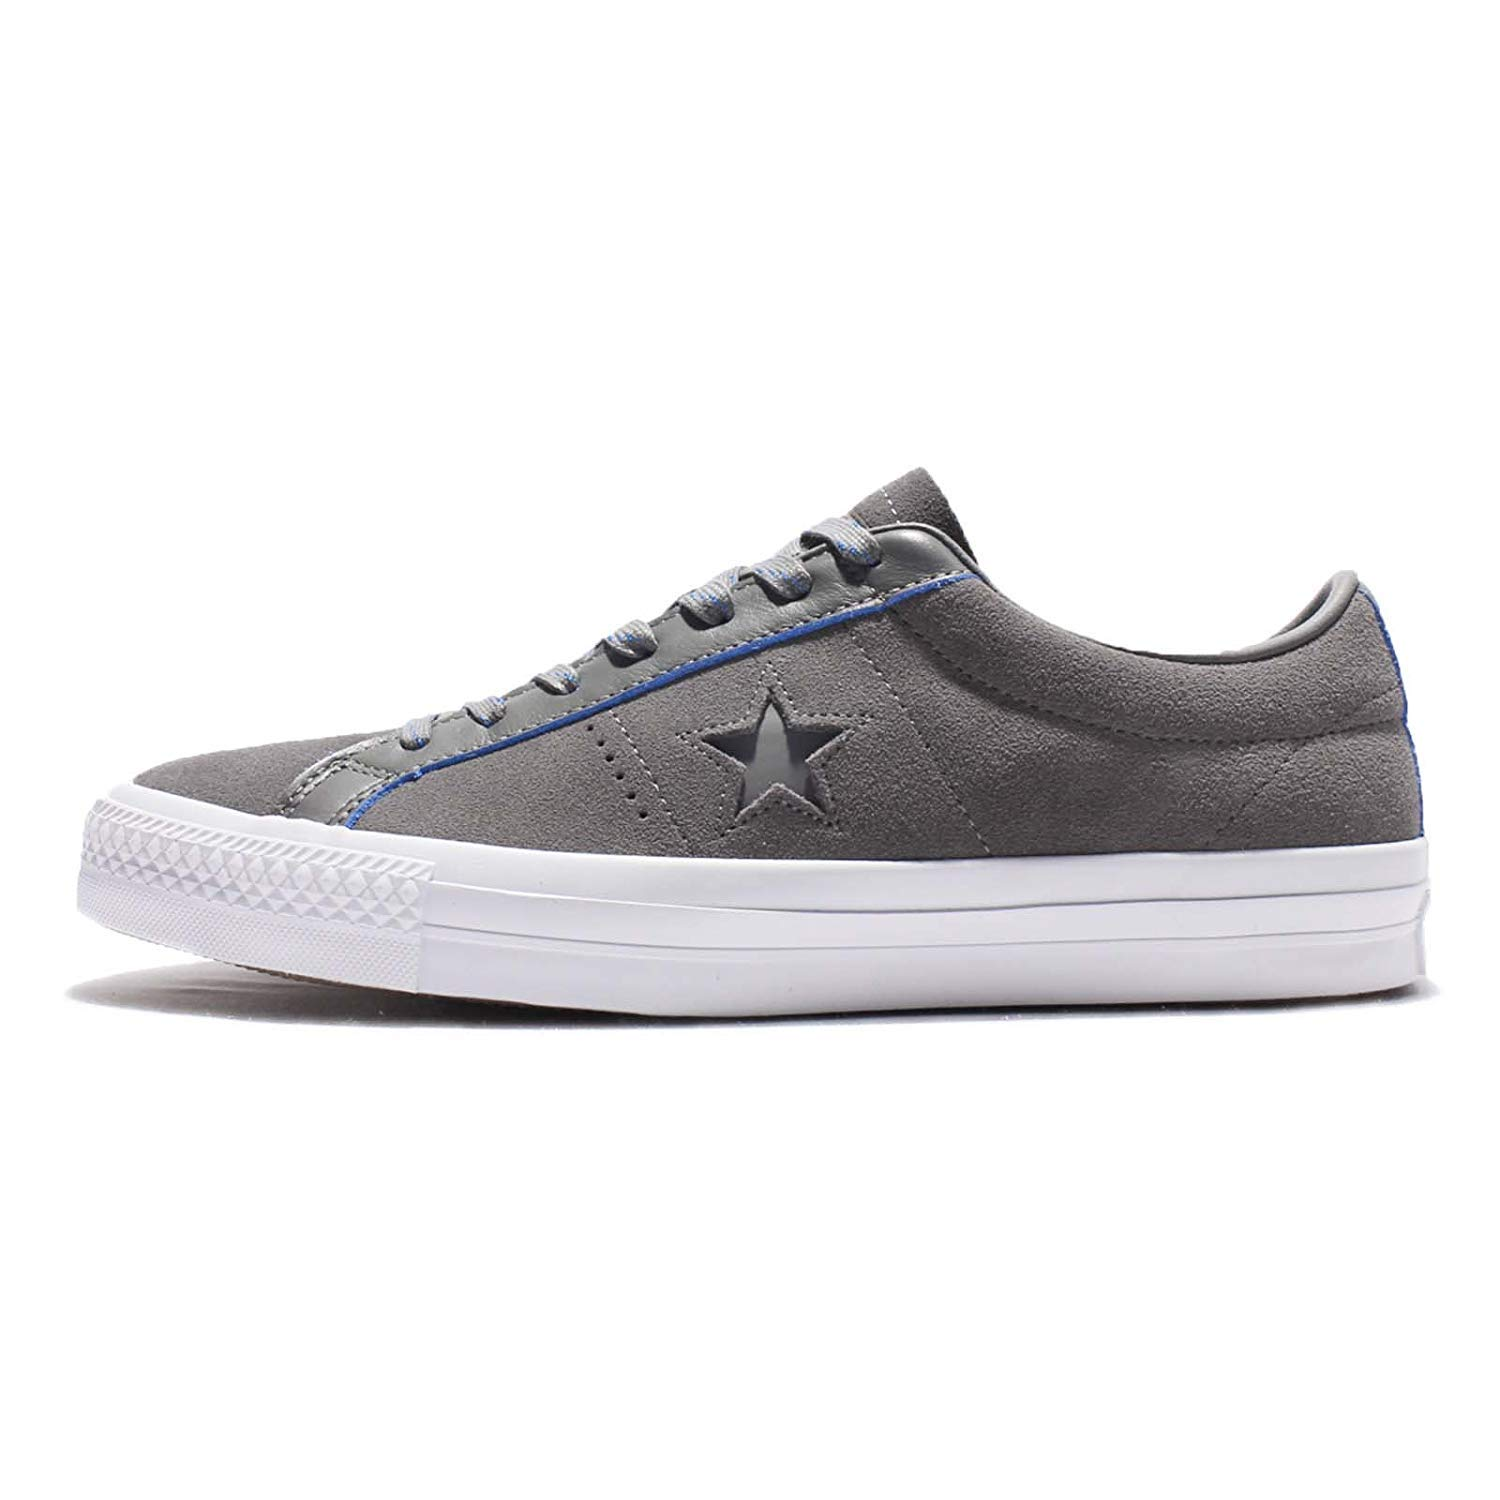 Converse Unisex One Star Pro Low Top Sneaker 155775C